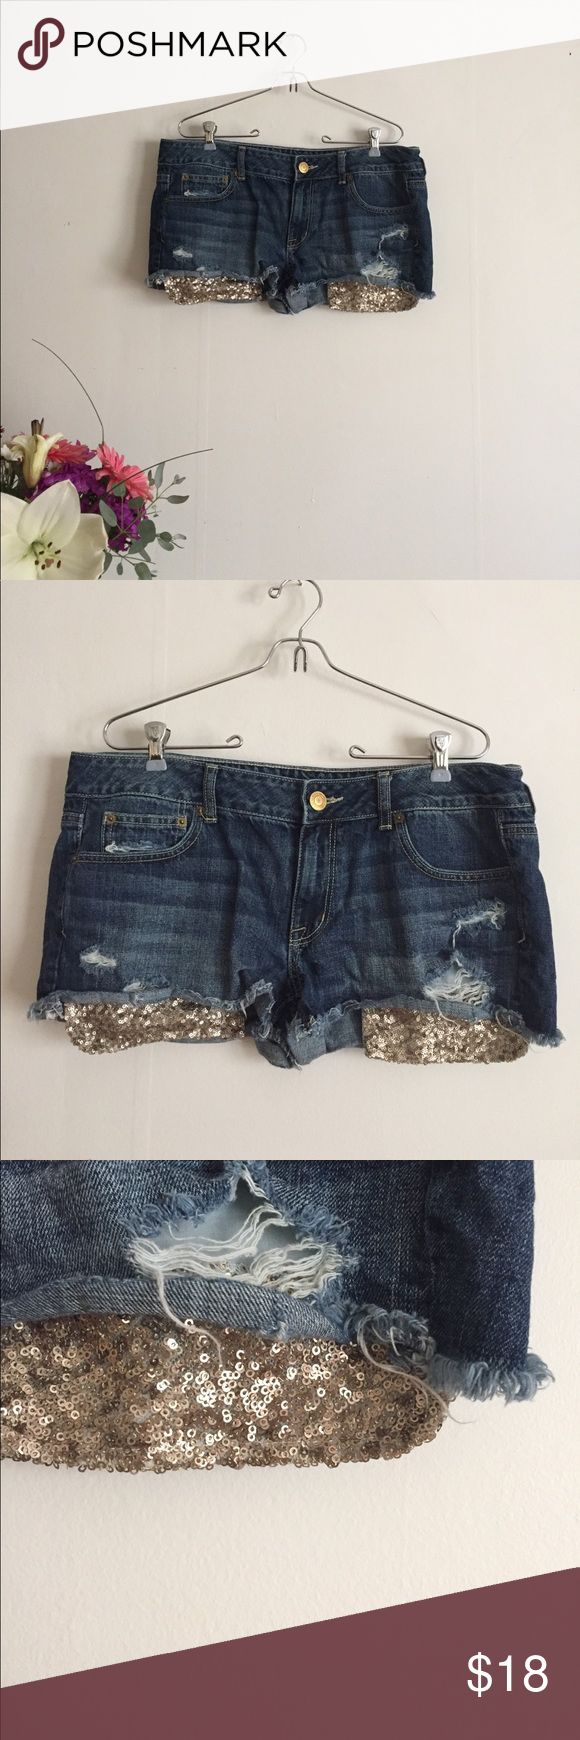 ae gold sequin pocket shorts Great condition. Flat measurements: 18.75 inch waist, 2.25 inch inseam. 100% cotton. American Eagle Outfitters Shorts